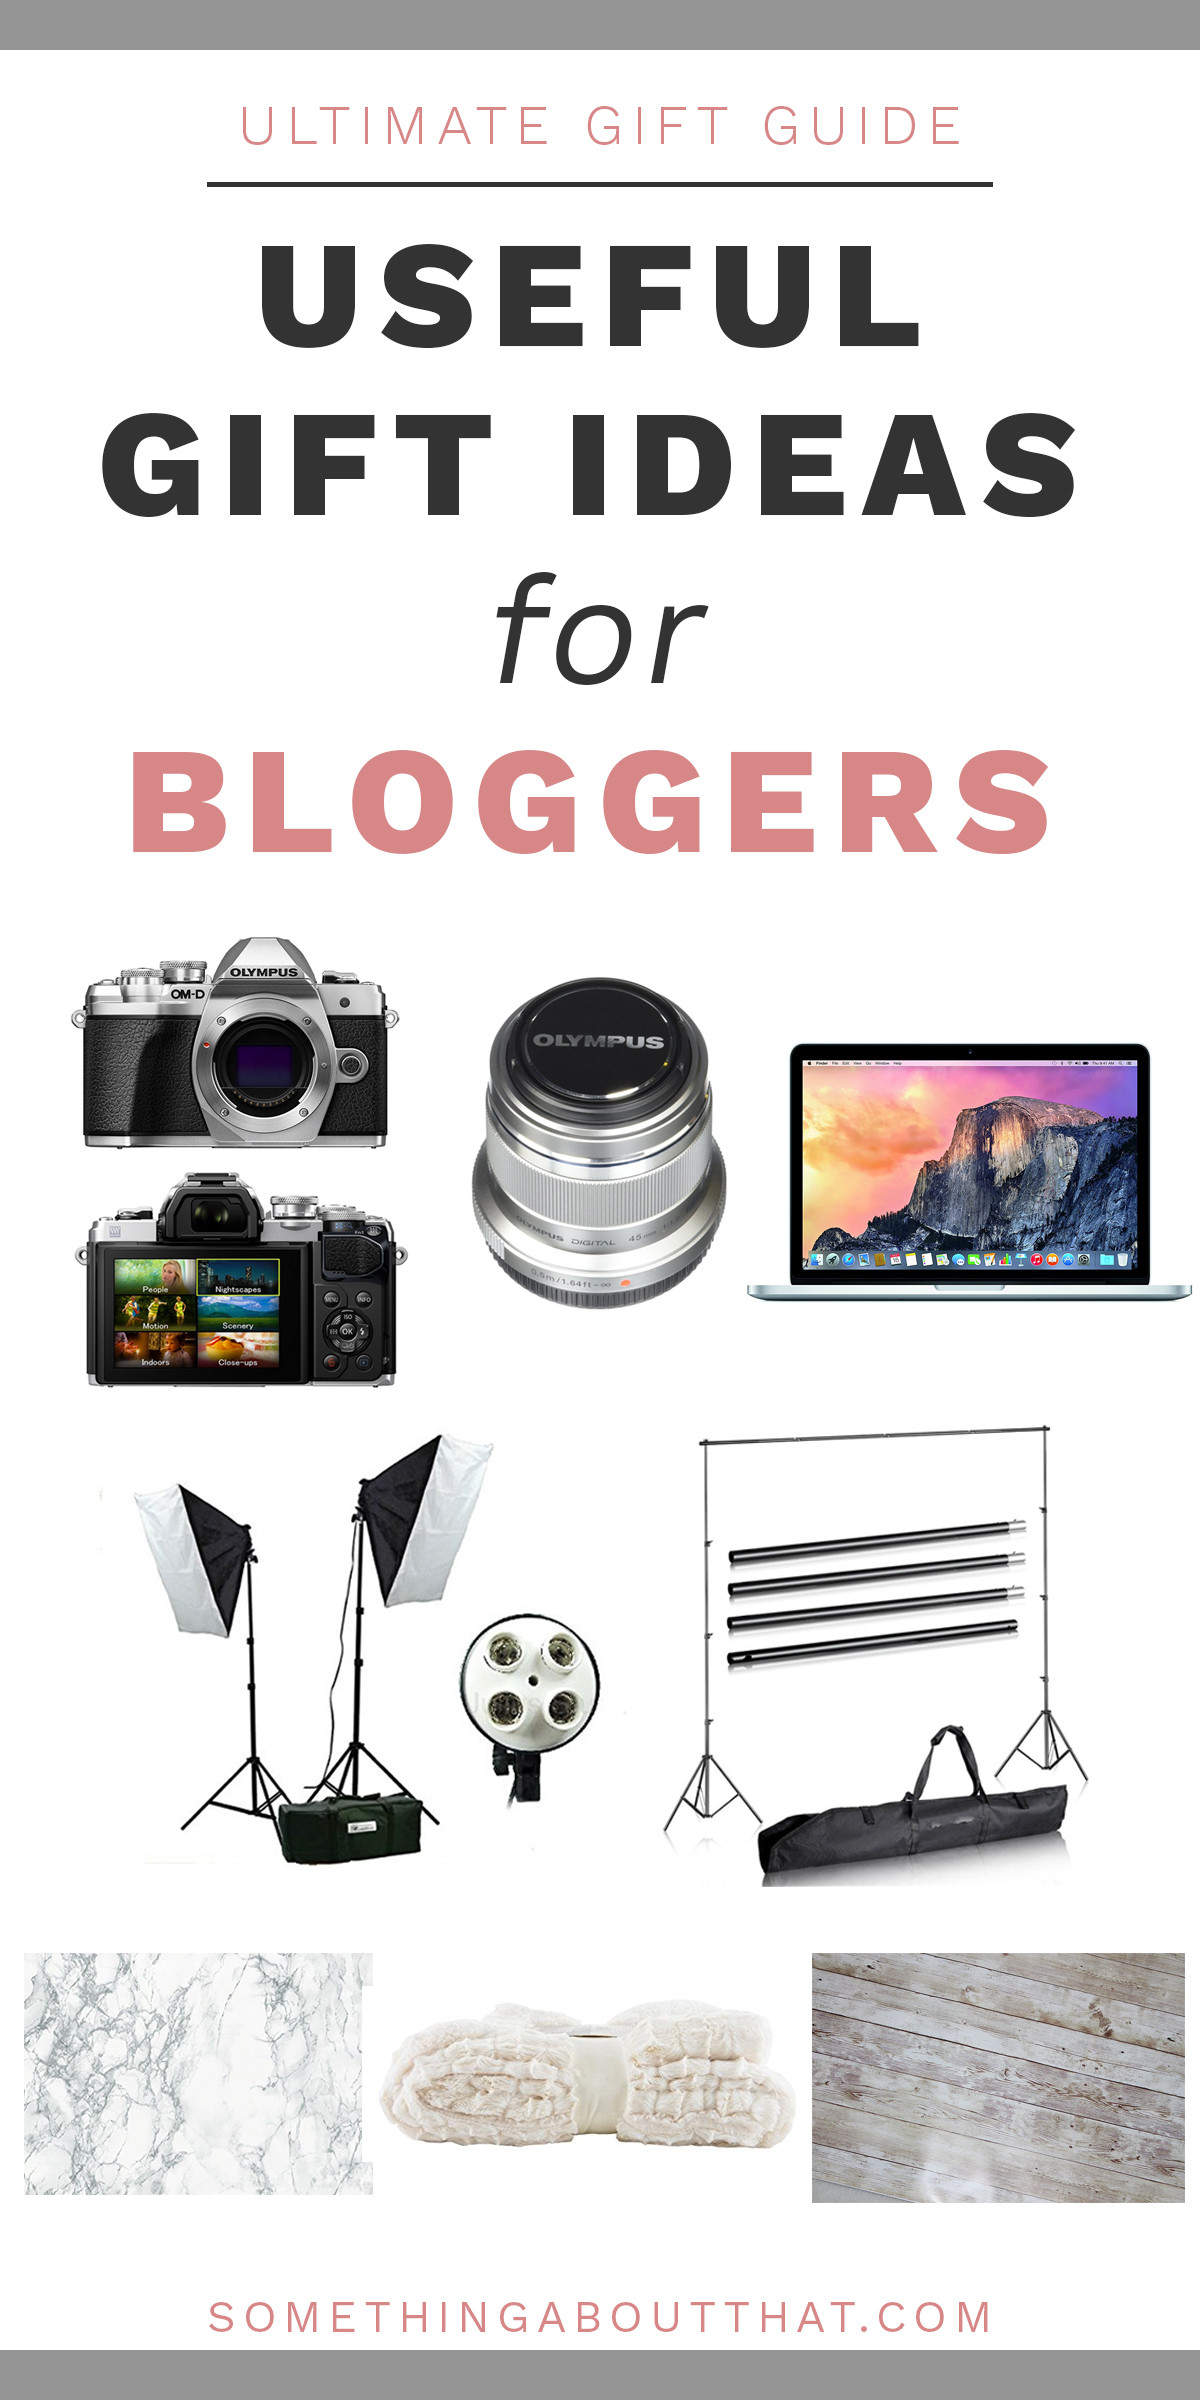 Best ideas about Useful Gift Ideas . Save or Pin Useful Gift Ideas for Bloggers Now.